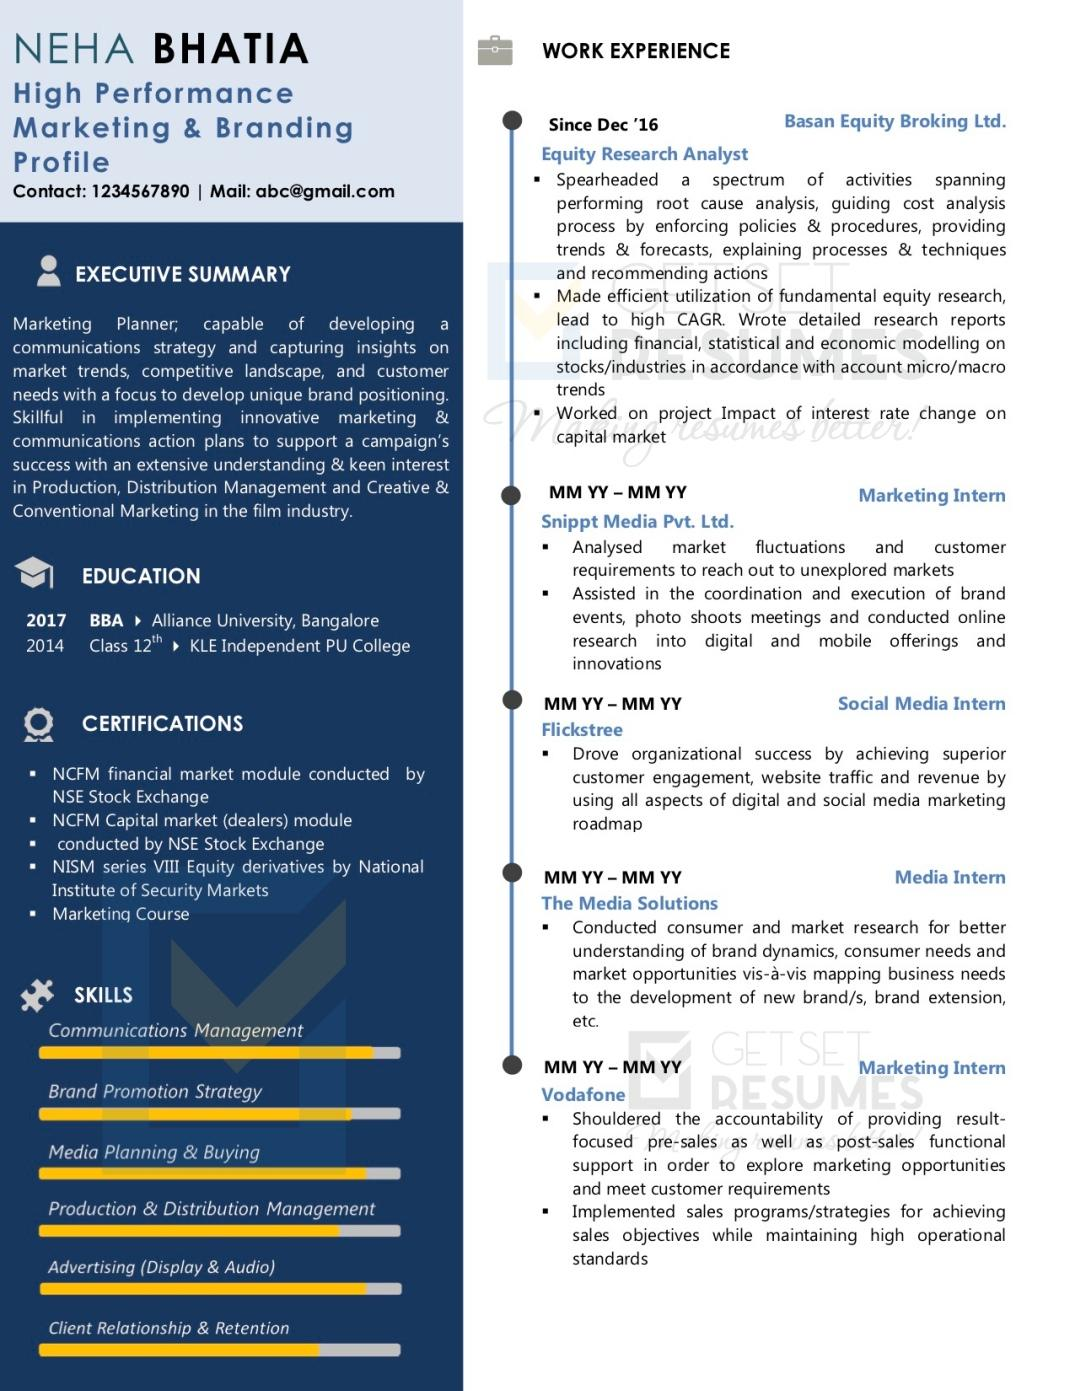 One Page Sample Resume, Marketing and Finance mixed profile, Mid Career Resume Samples India